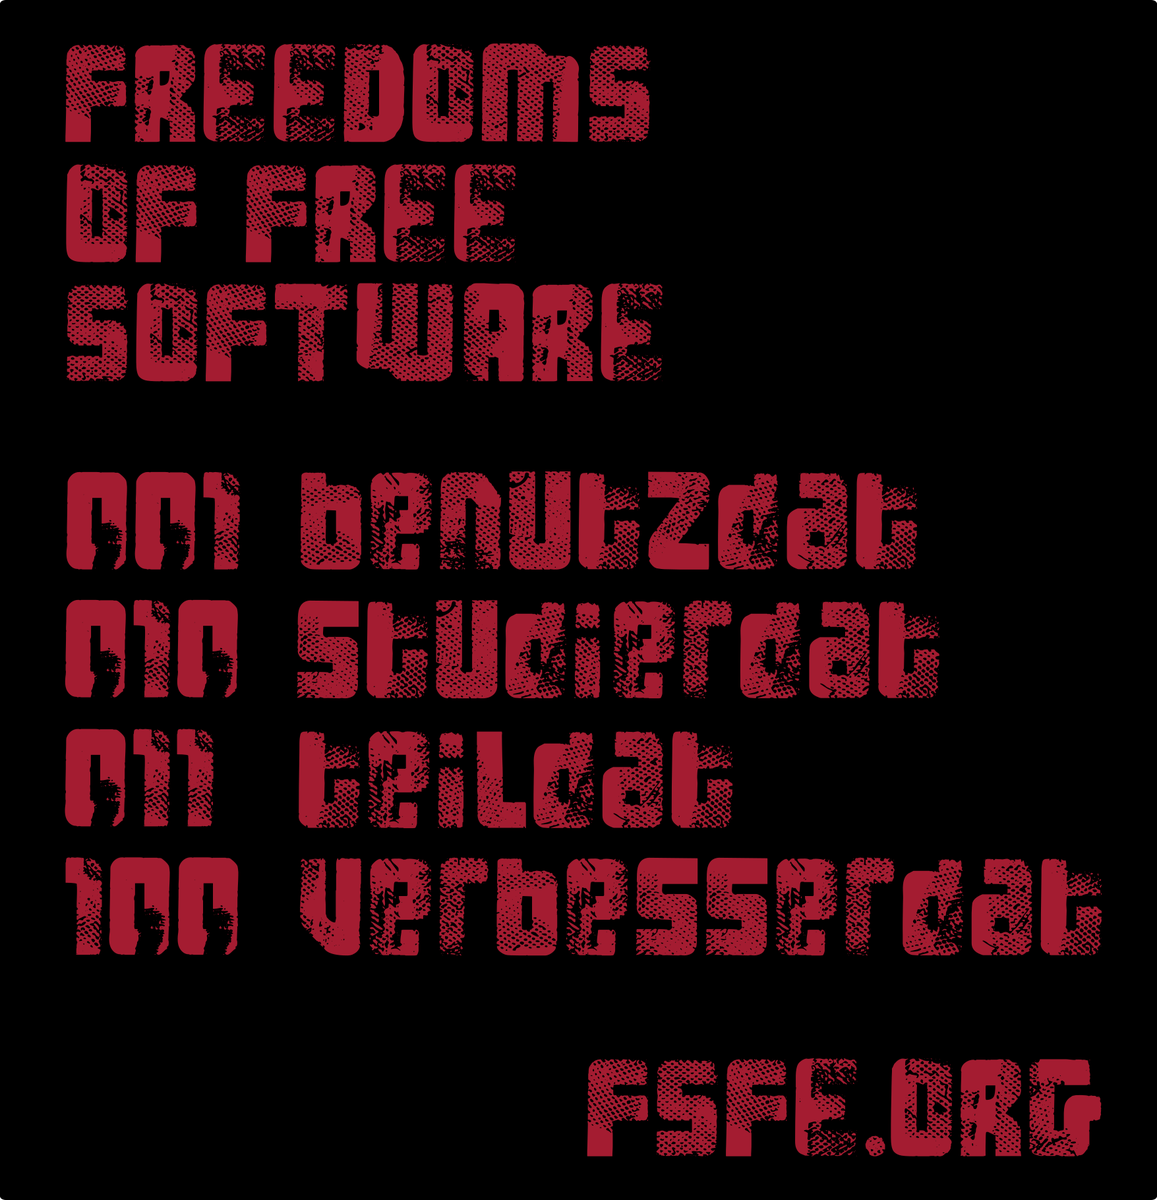 Free Software Foundation Europe (fsfe@quitter.no)'s status ...